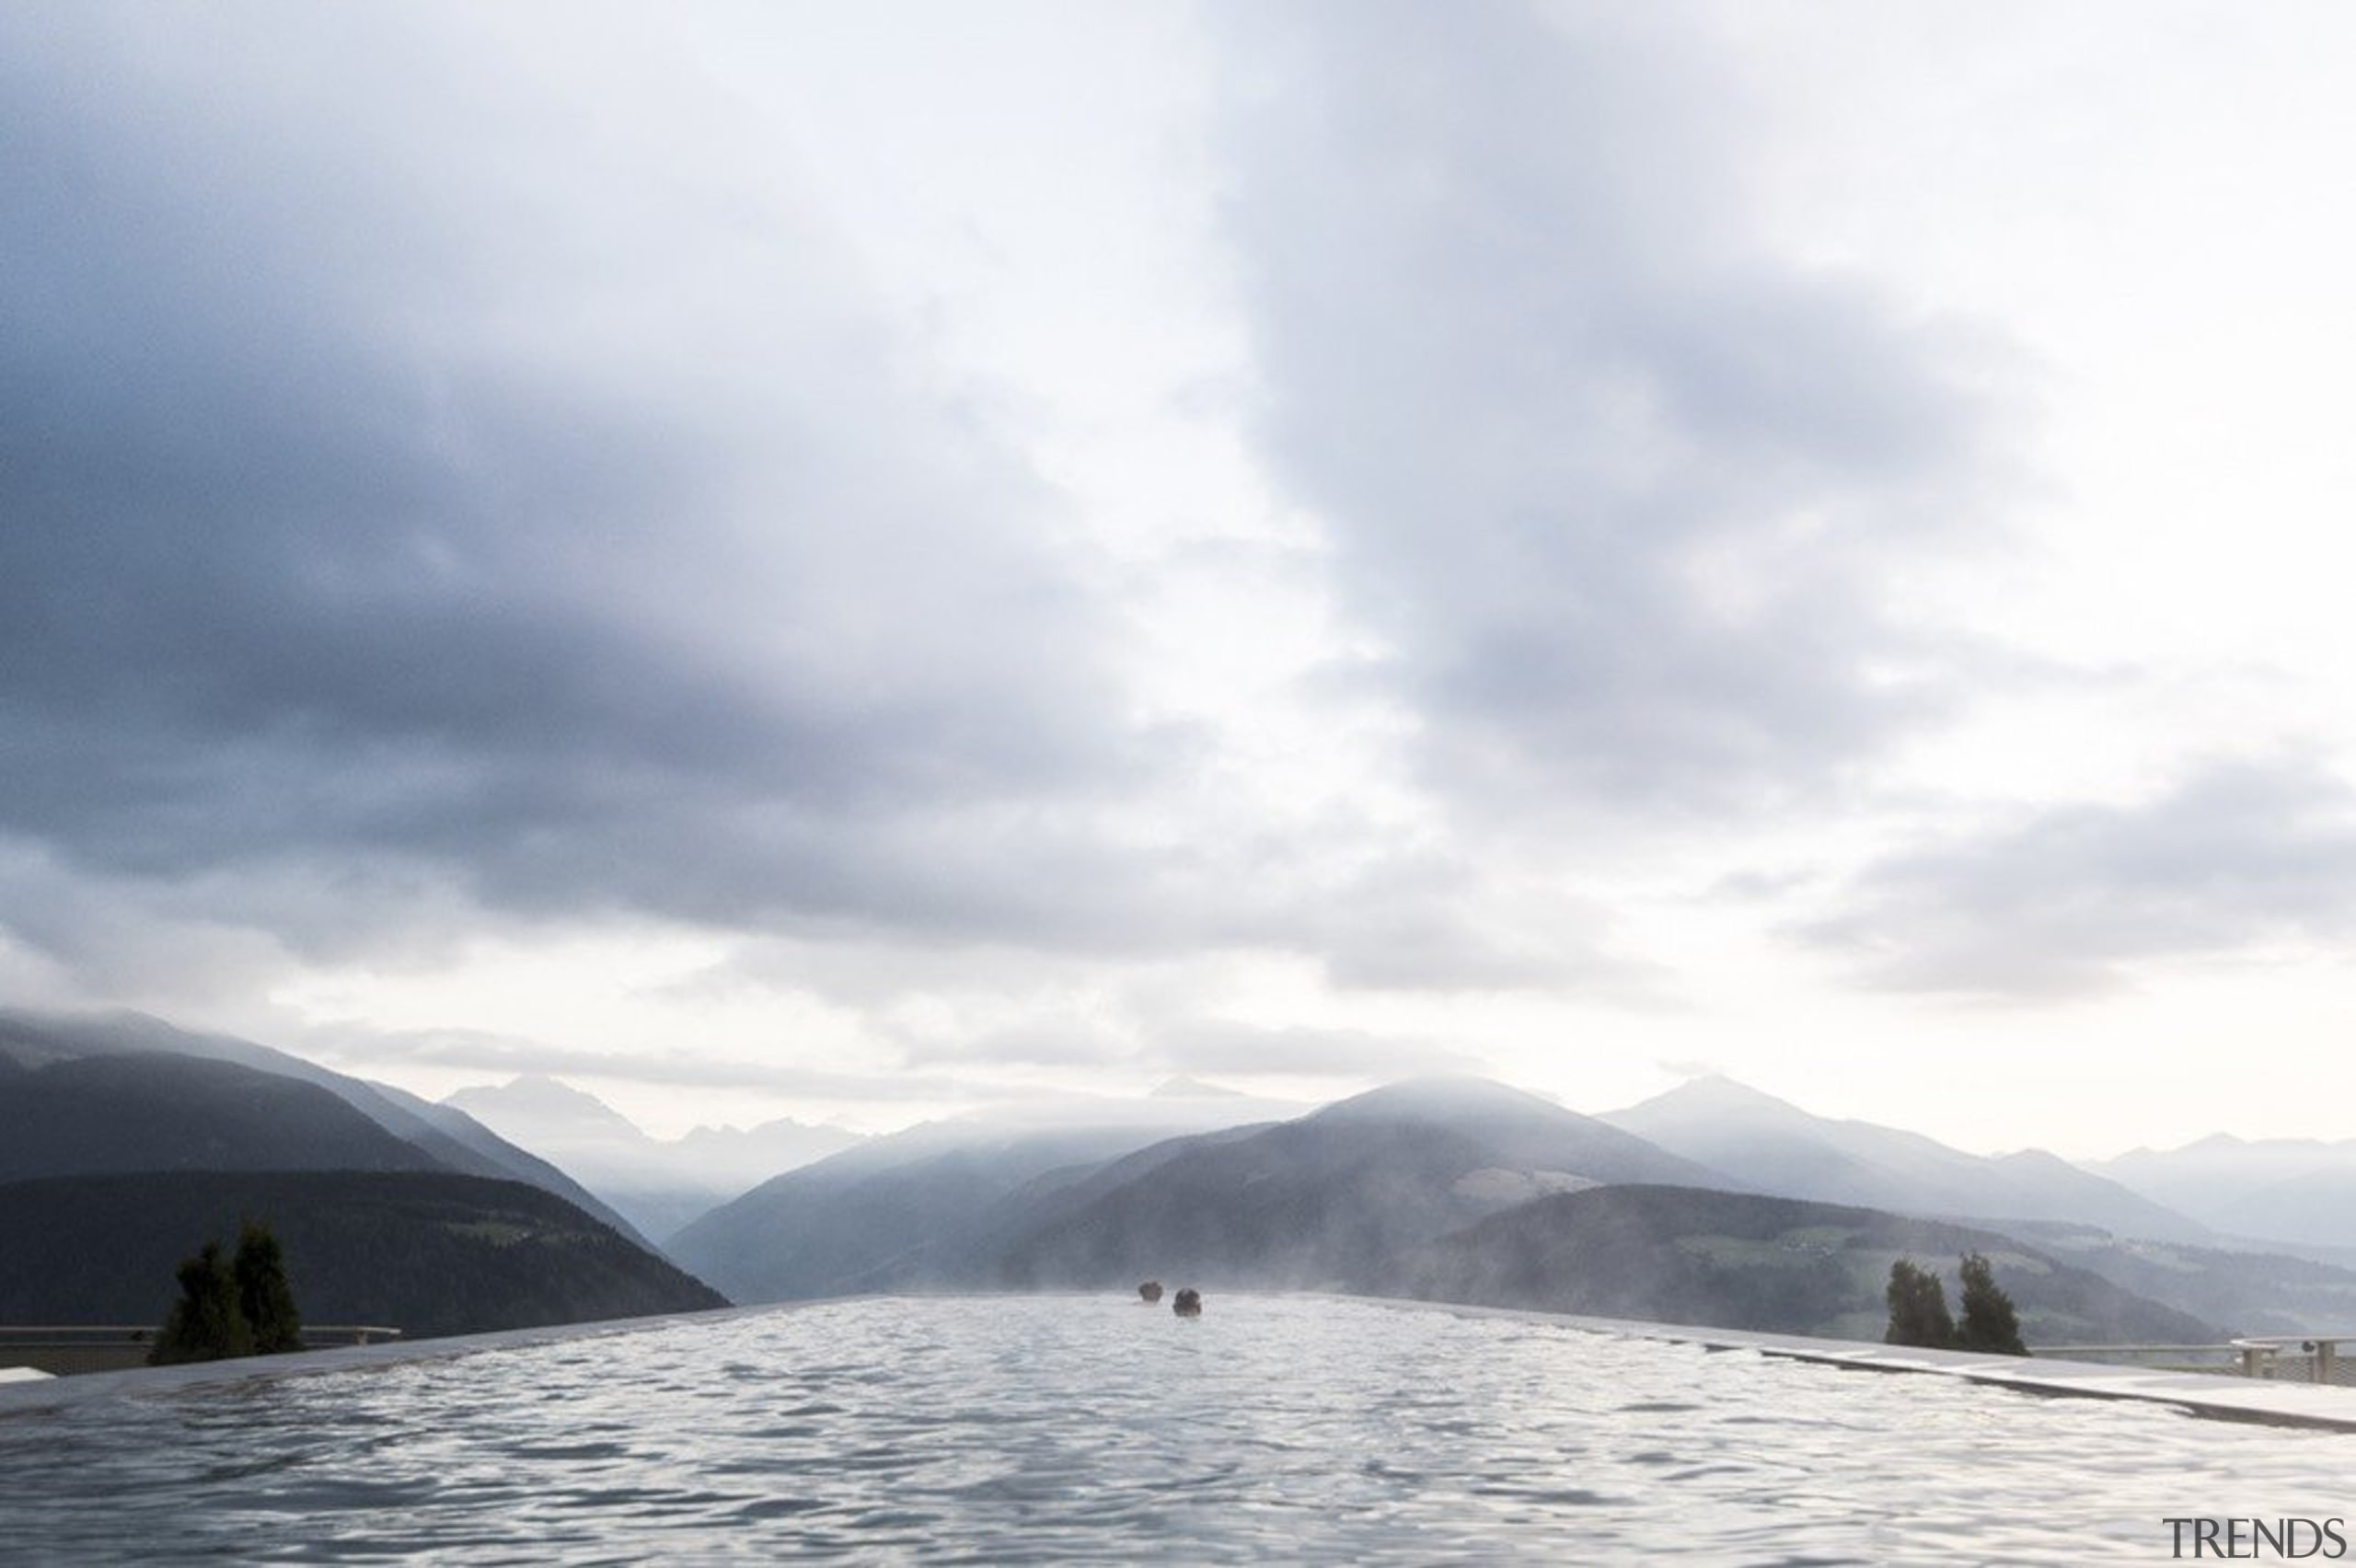 See more images of this hotel arctic, cloud, coastal and oceanic landforms, fjord, glacial landform, lake, lake district, loch, mountain, ocean, sea, sky, water, white